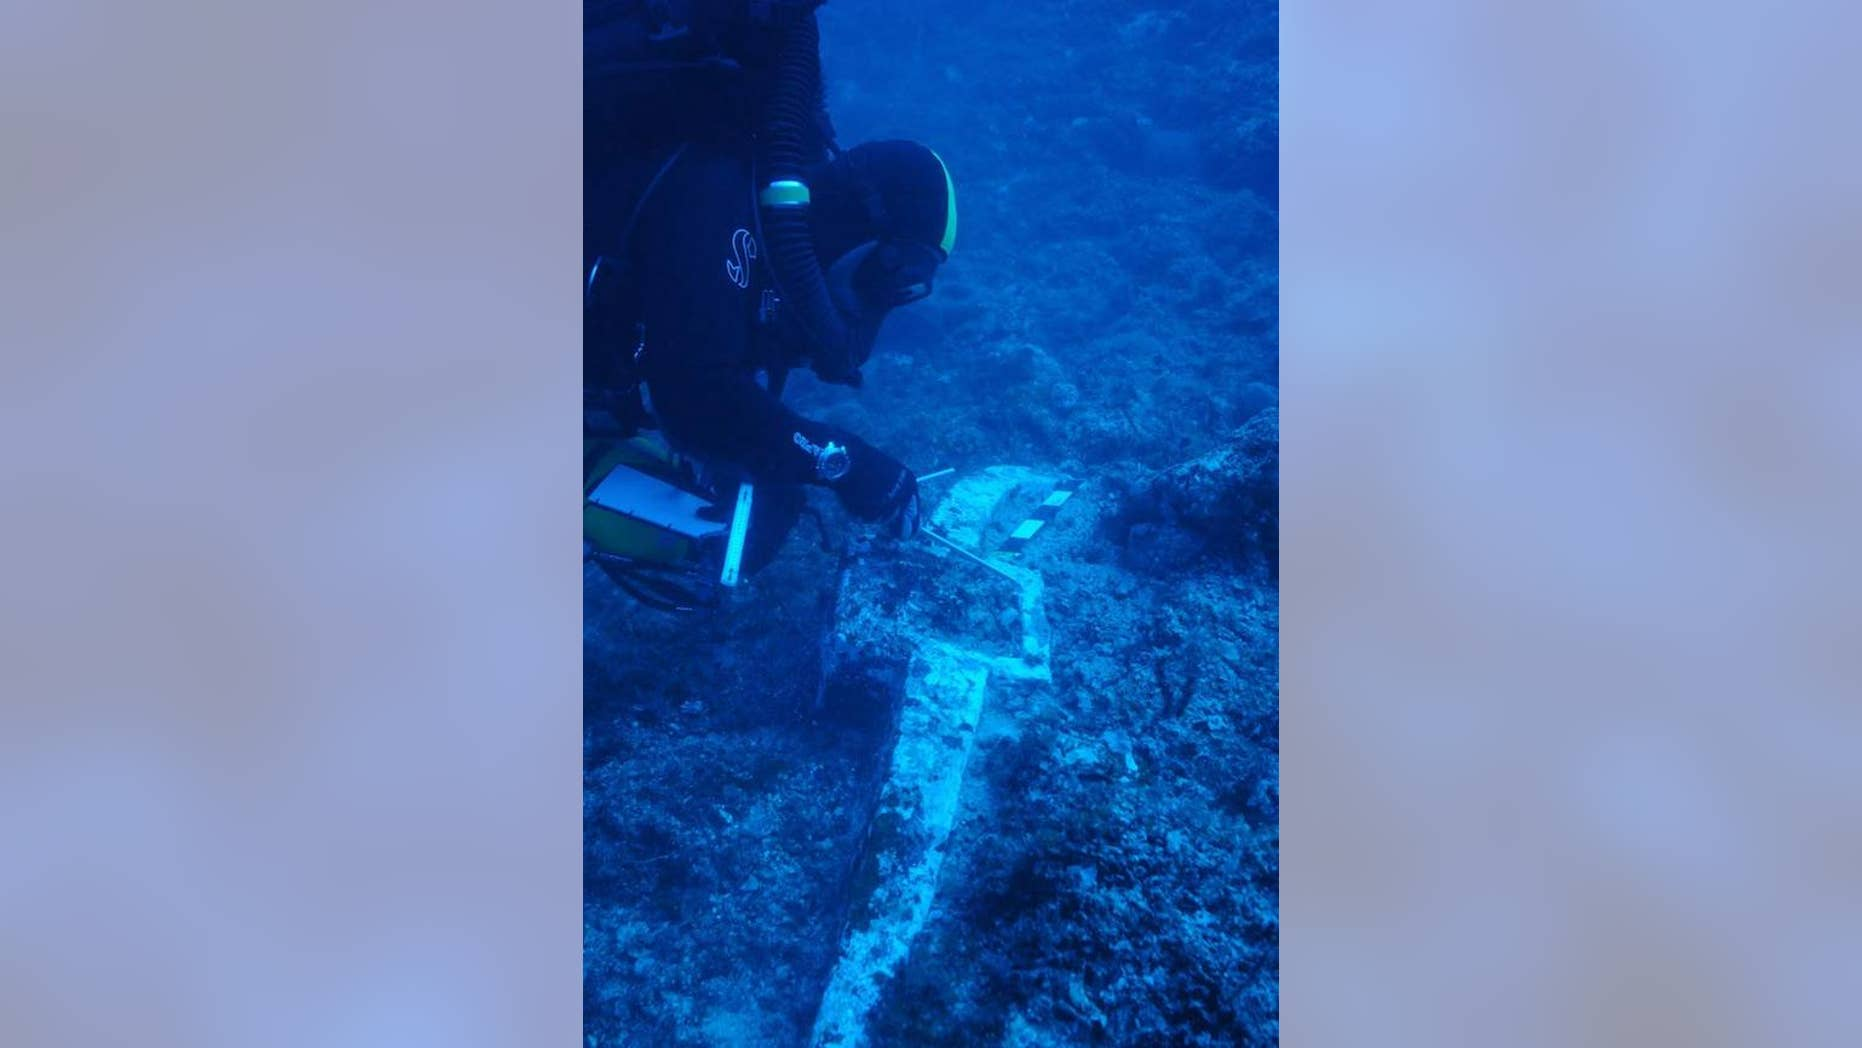 Here a researcher examines the anchor of what may be the Antikythera wreck or another wreck nearby. They are uncertain because they used Costeau's Antikythera expedition videos to gauge where to anchor their boat. Since some of the shots in the